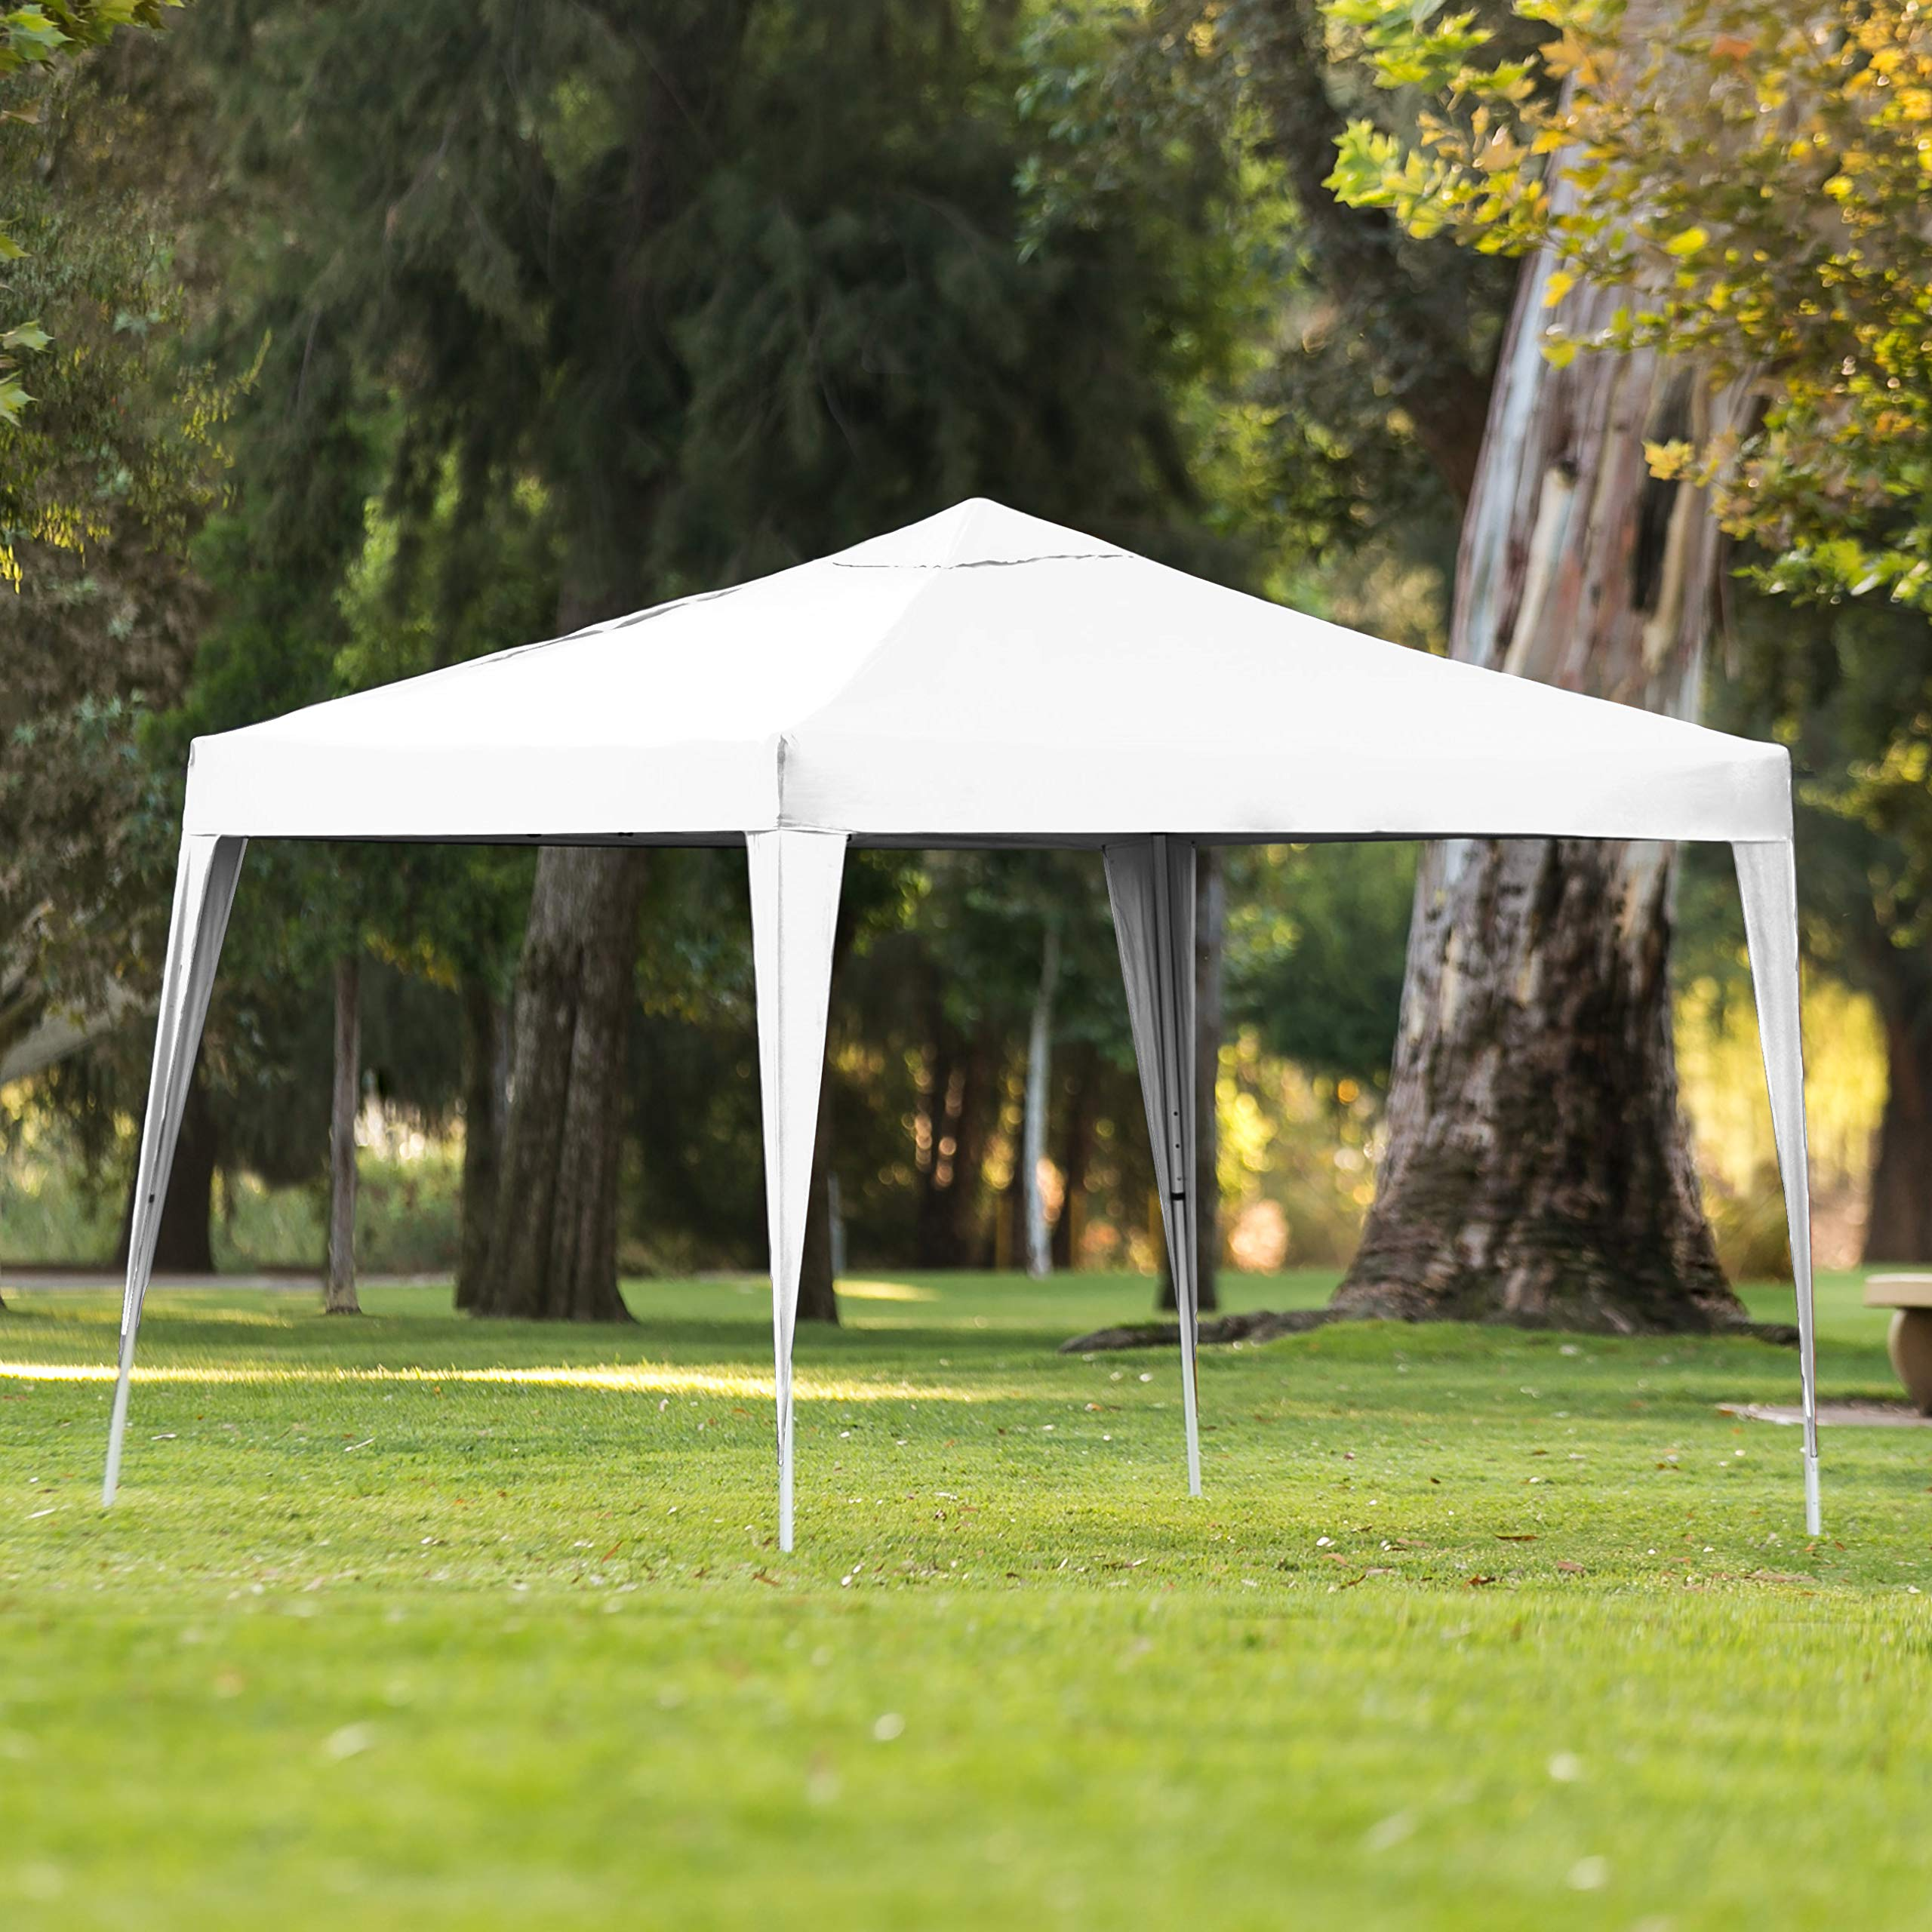 Best Choice Products 10x10ft Outdoor Portable Adjustable Instant Pop Up Gazebo Canopy Tent w/Carrying Bag White